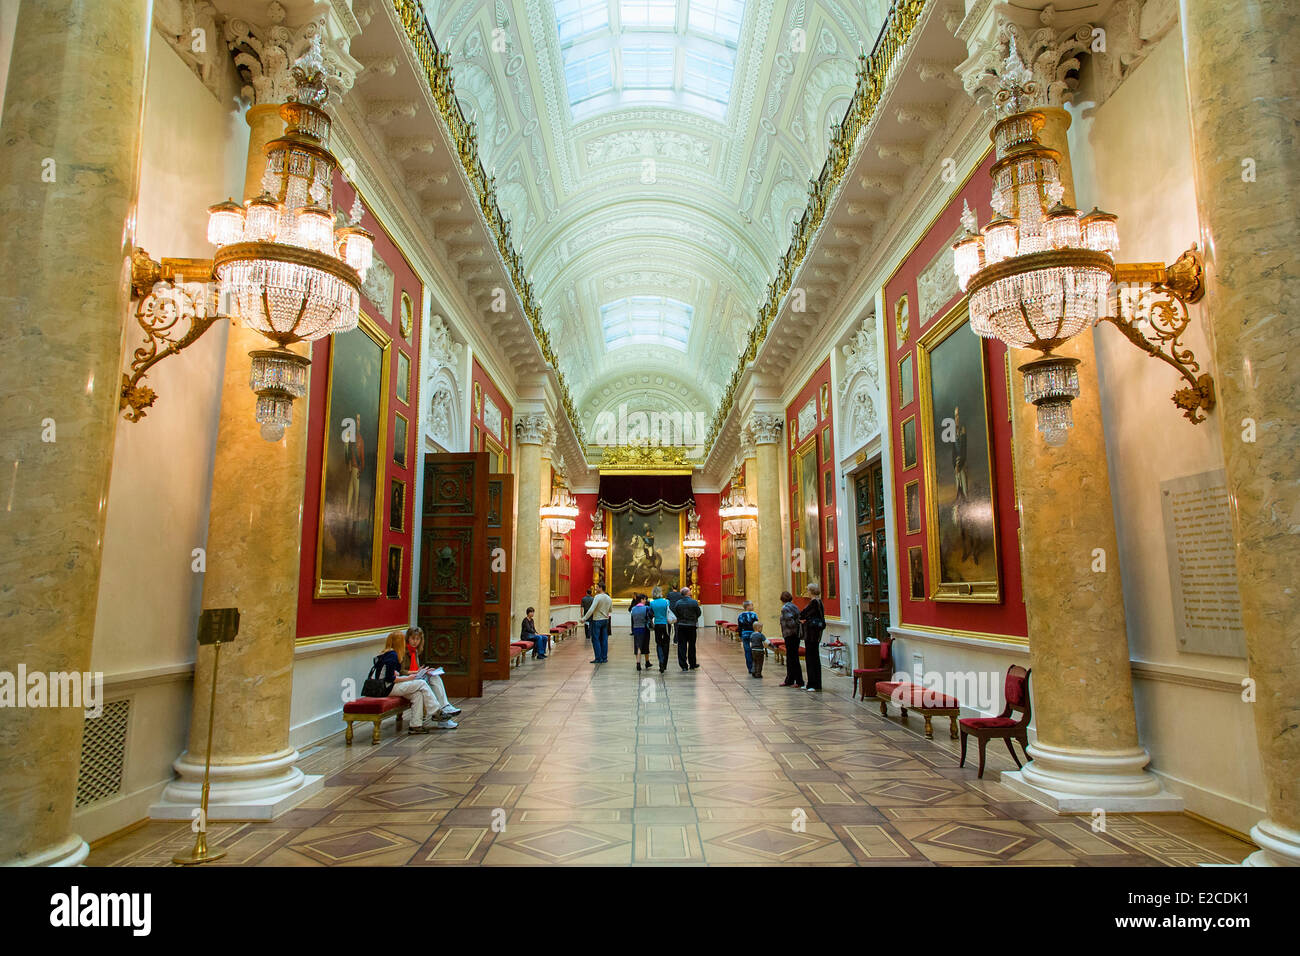 Russia, Saint Petersburg, listed as World Heritage by UNESCO, winter palace - Stock Image